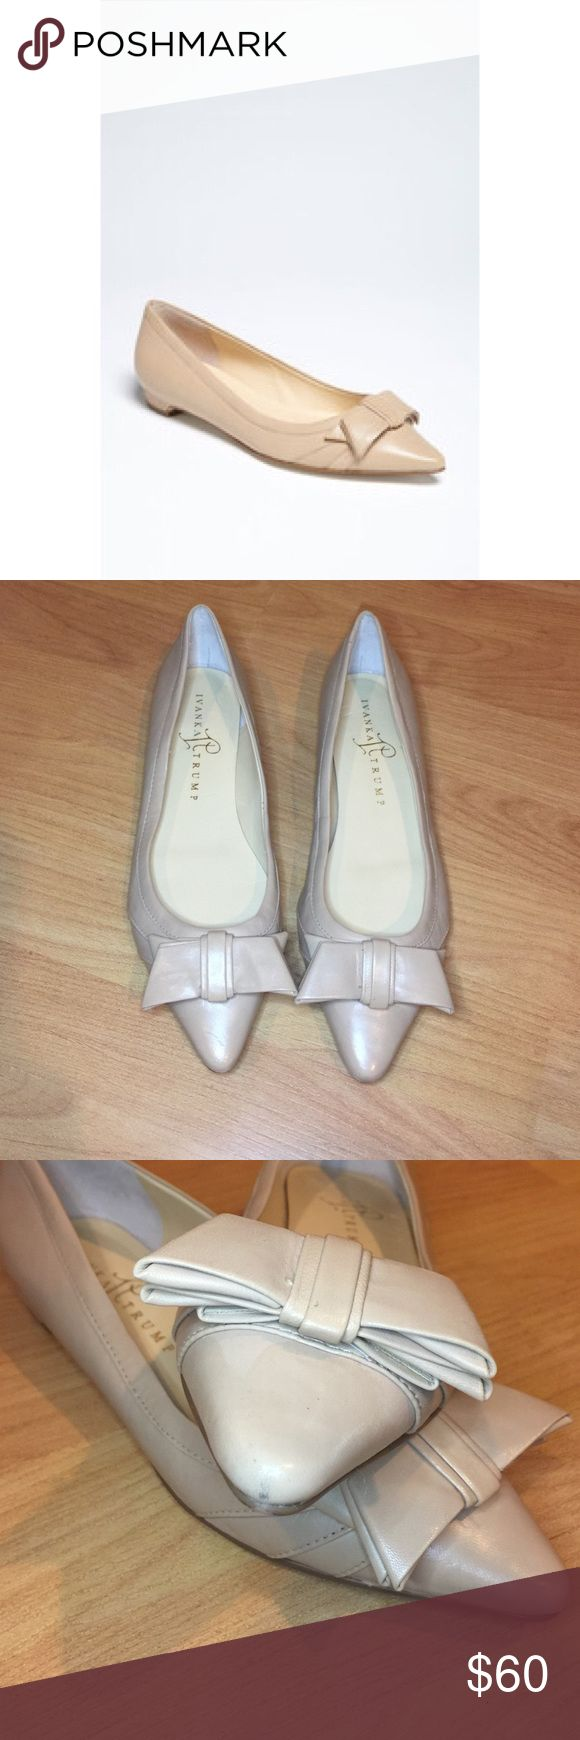 """[Ivanka Trump] •Tan Leather Pointed Flats• Layered leathers sweep into a bow atop a darling pointy-toe flat. Leather upper/synthetic lining/rubber sole. Fits true to size. Tan/Beige color. Style: """"Itabello"""" - Gently worn, good condition, minor scuffs (see third photo). Size 6W. Ivanka Trump Shoes Flats & Loafers"""